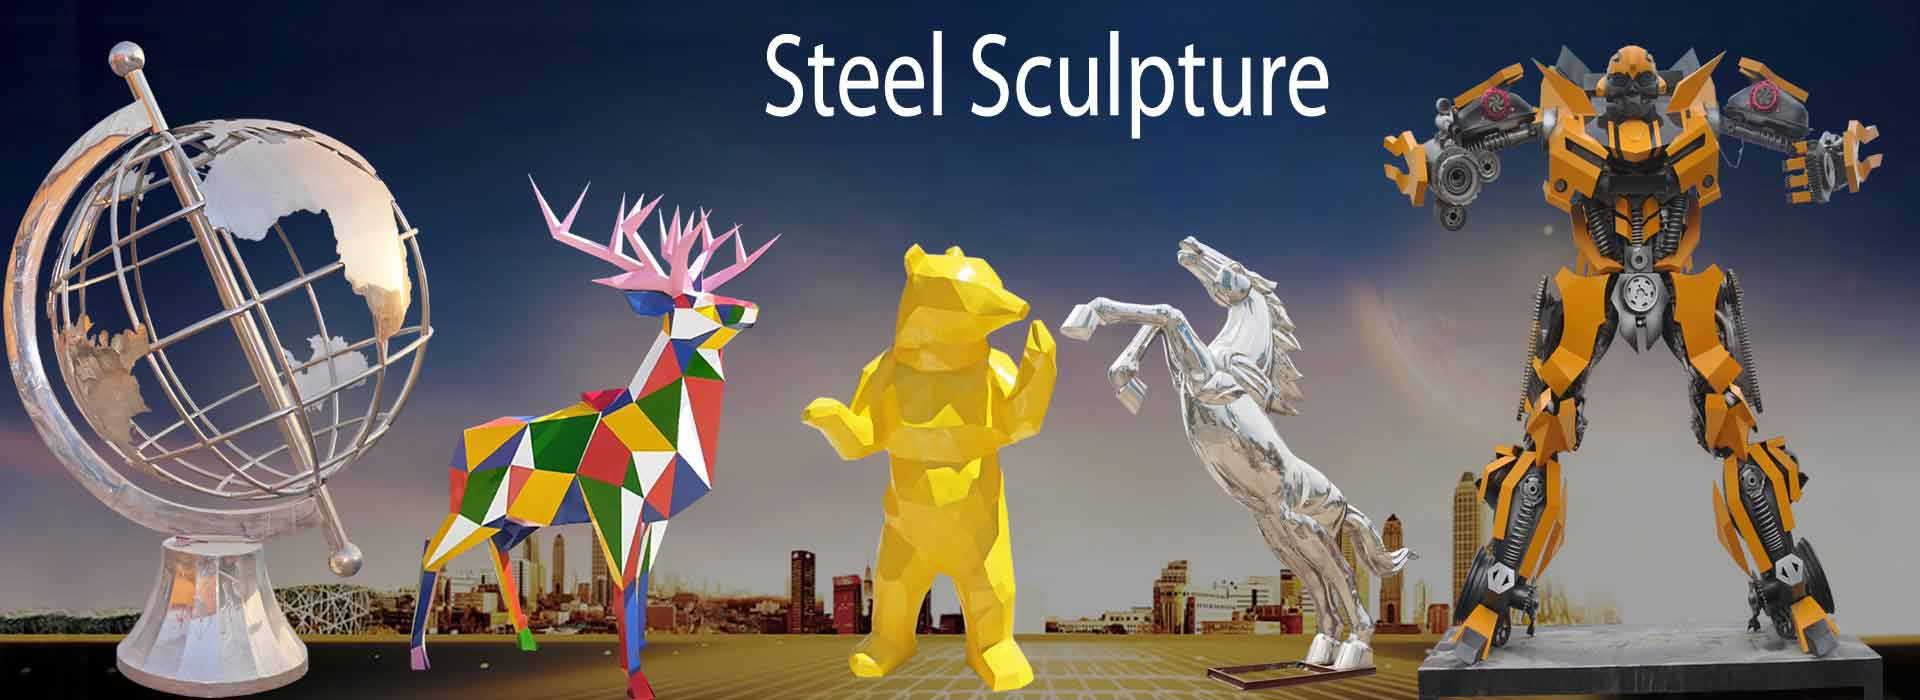 stainless steel statue sculpture